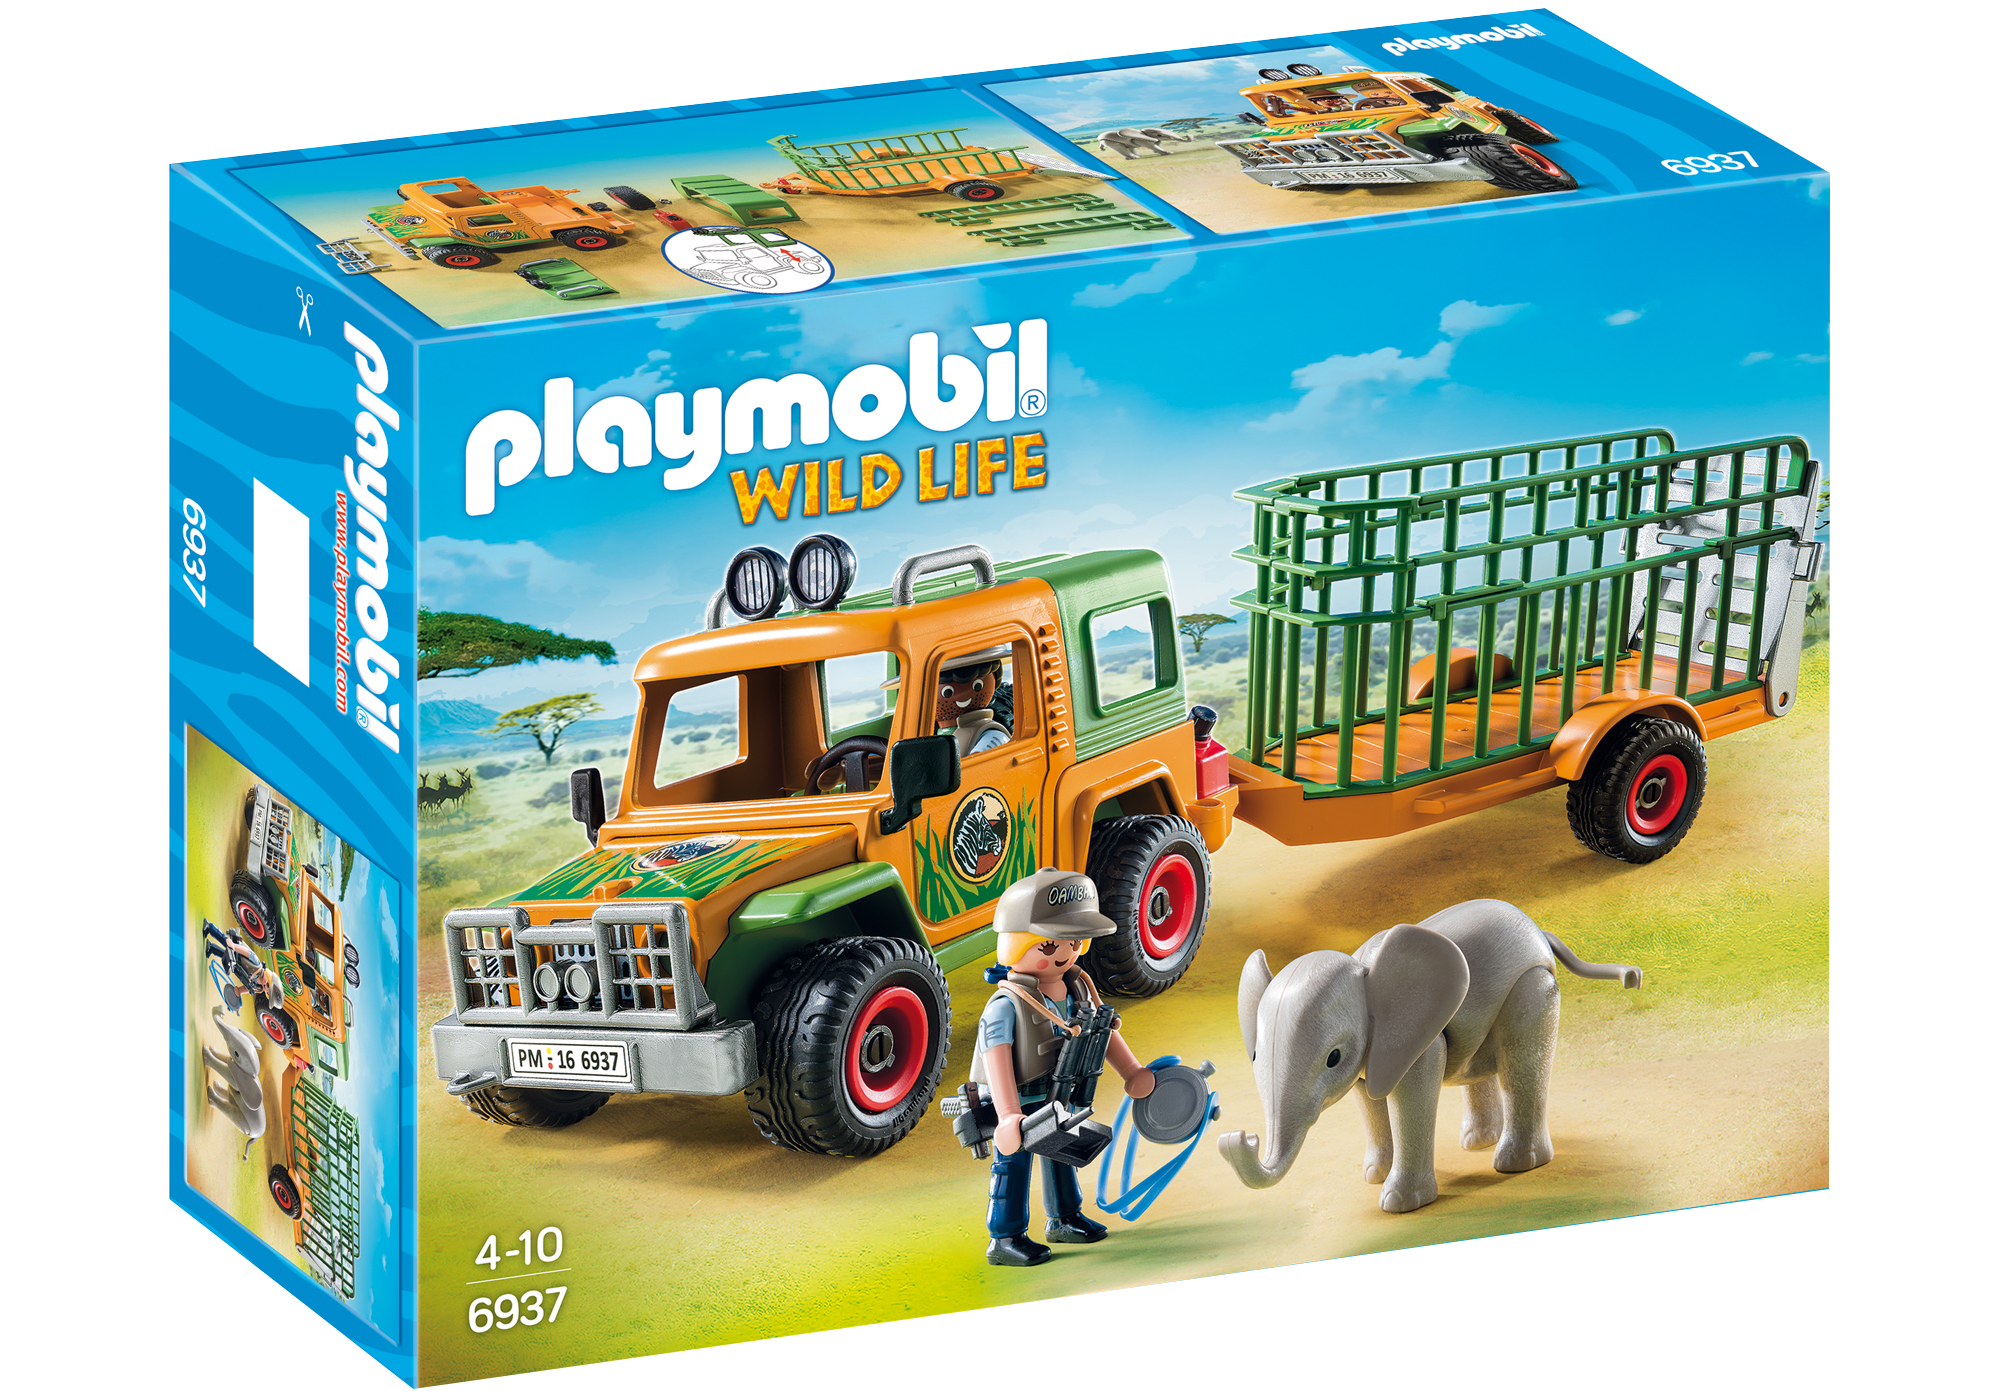 http://media.playmobil.com/i/playmobil/6937_product_box_front